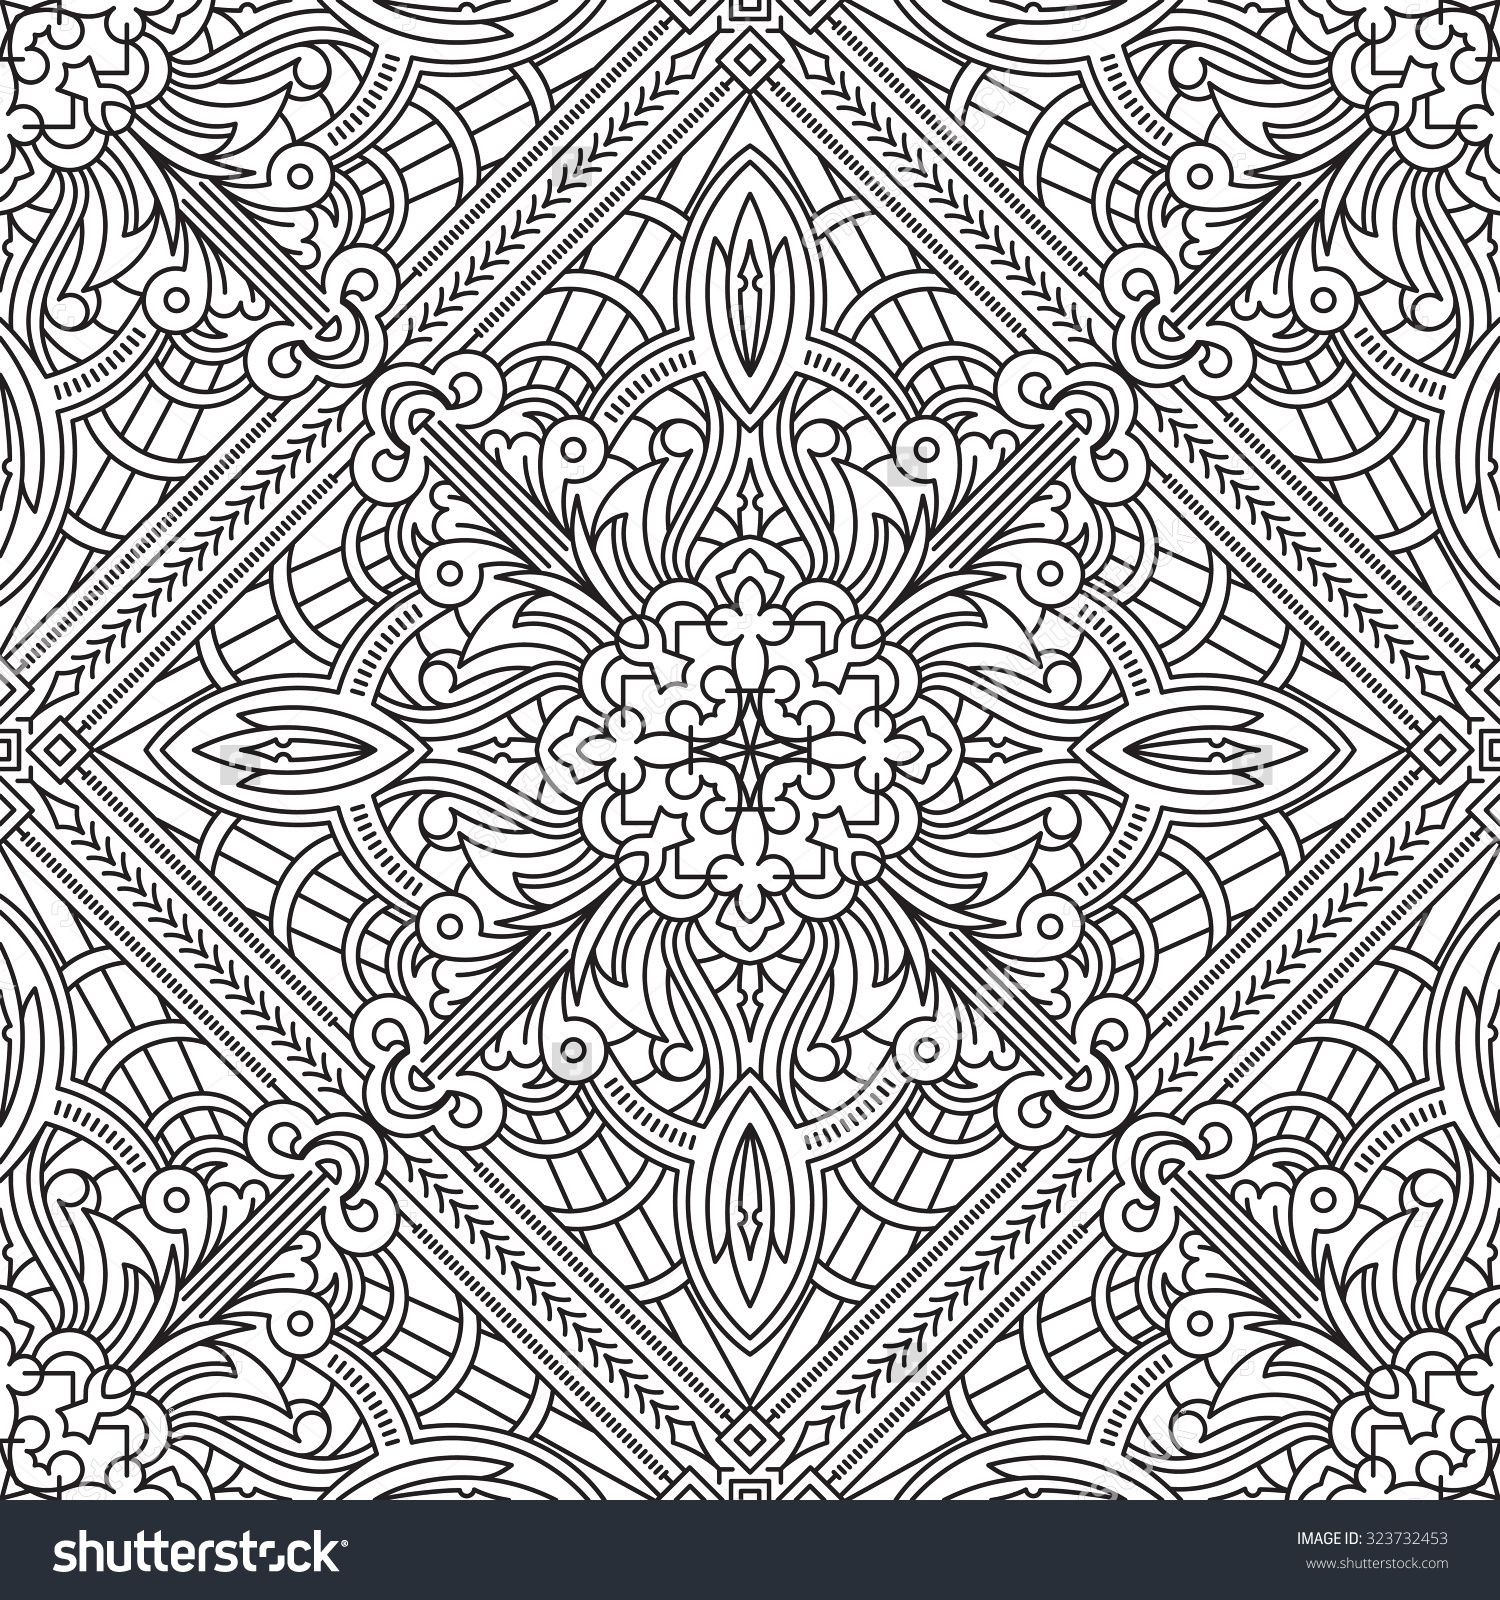 Seamless Abstract Tribal Pattern Hand Drawn Ethnic Texture Vector